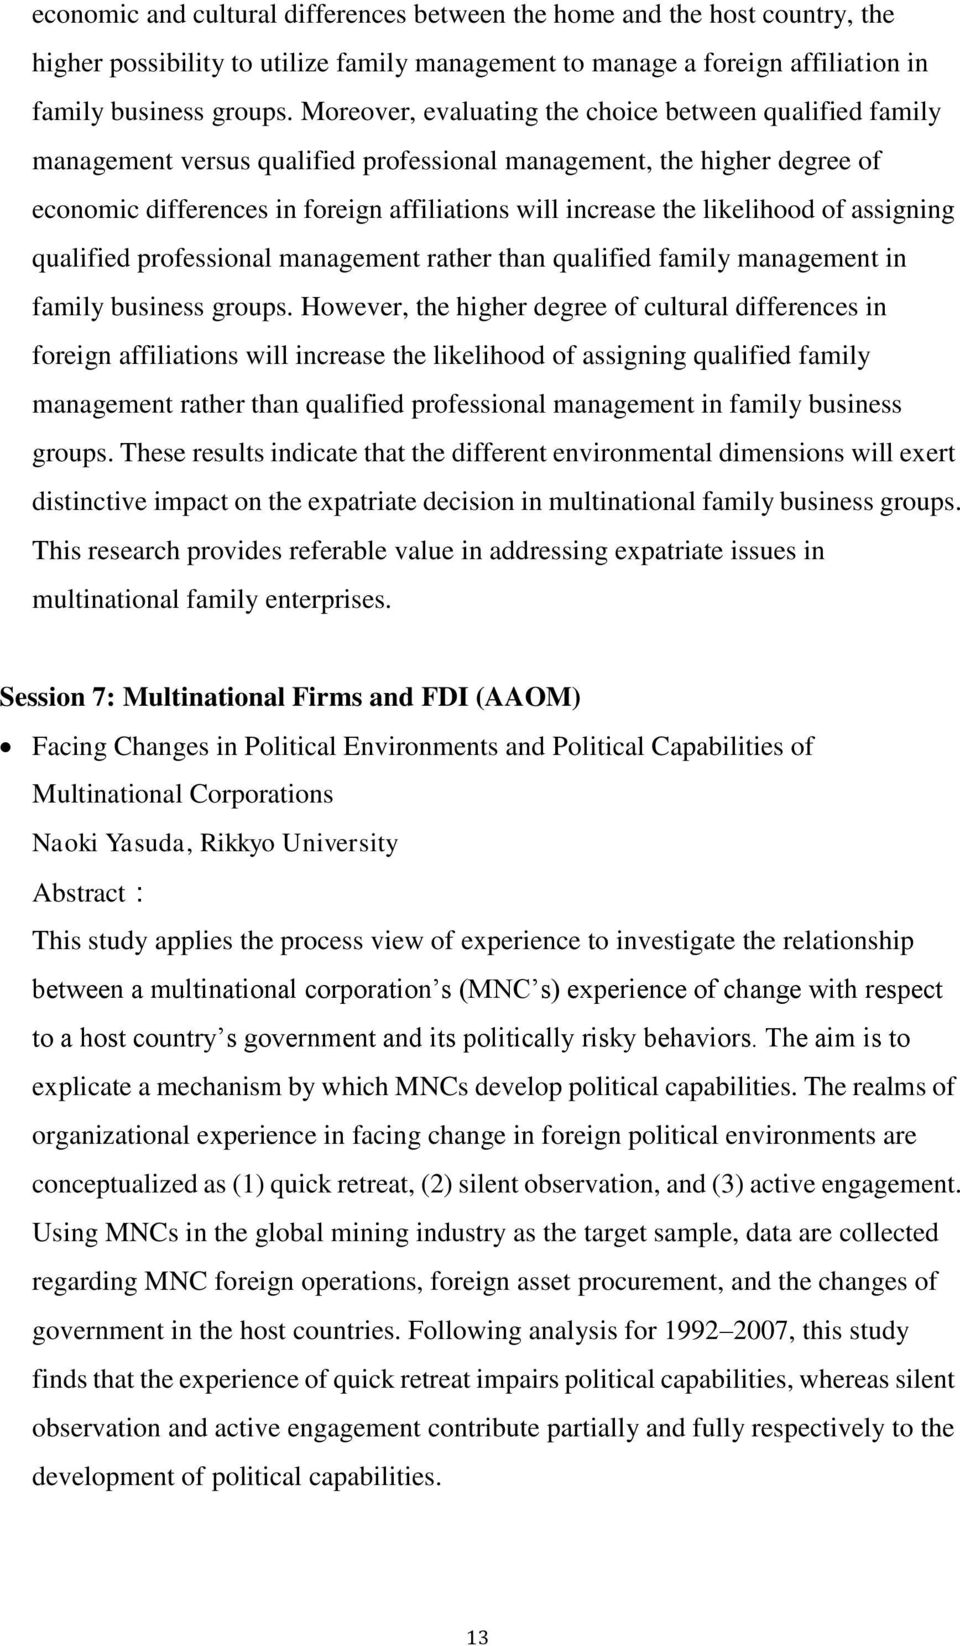 likelihood of assigning qualified professional management rather than qualified family management in family business groups.